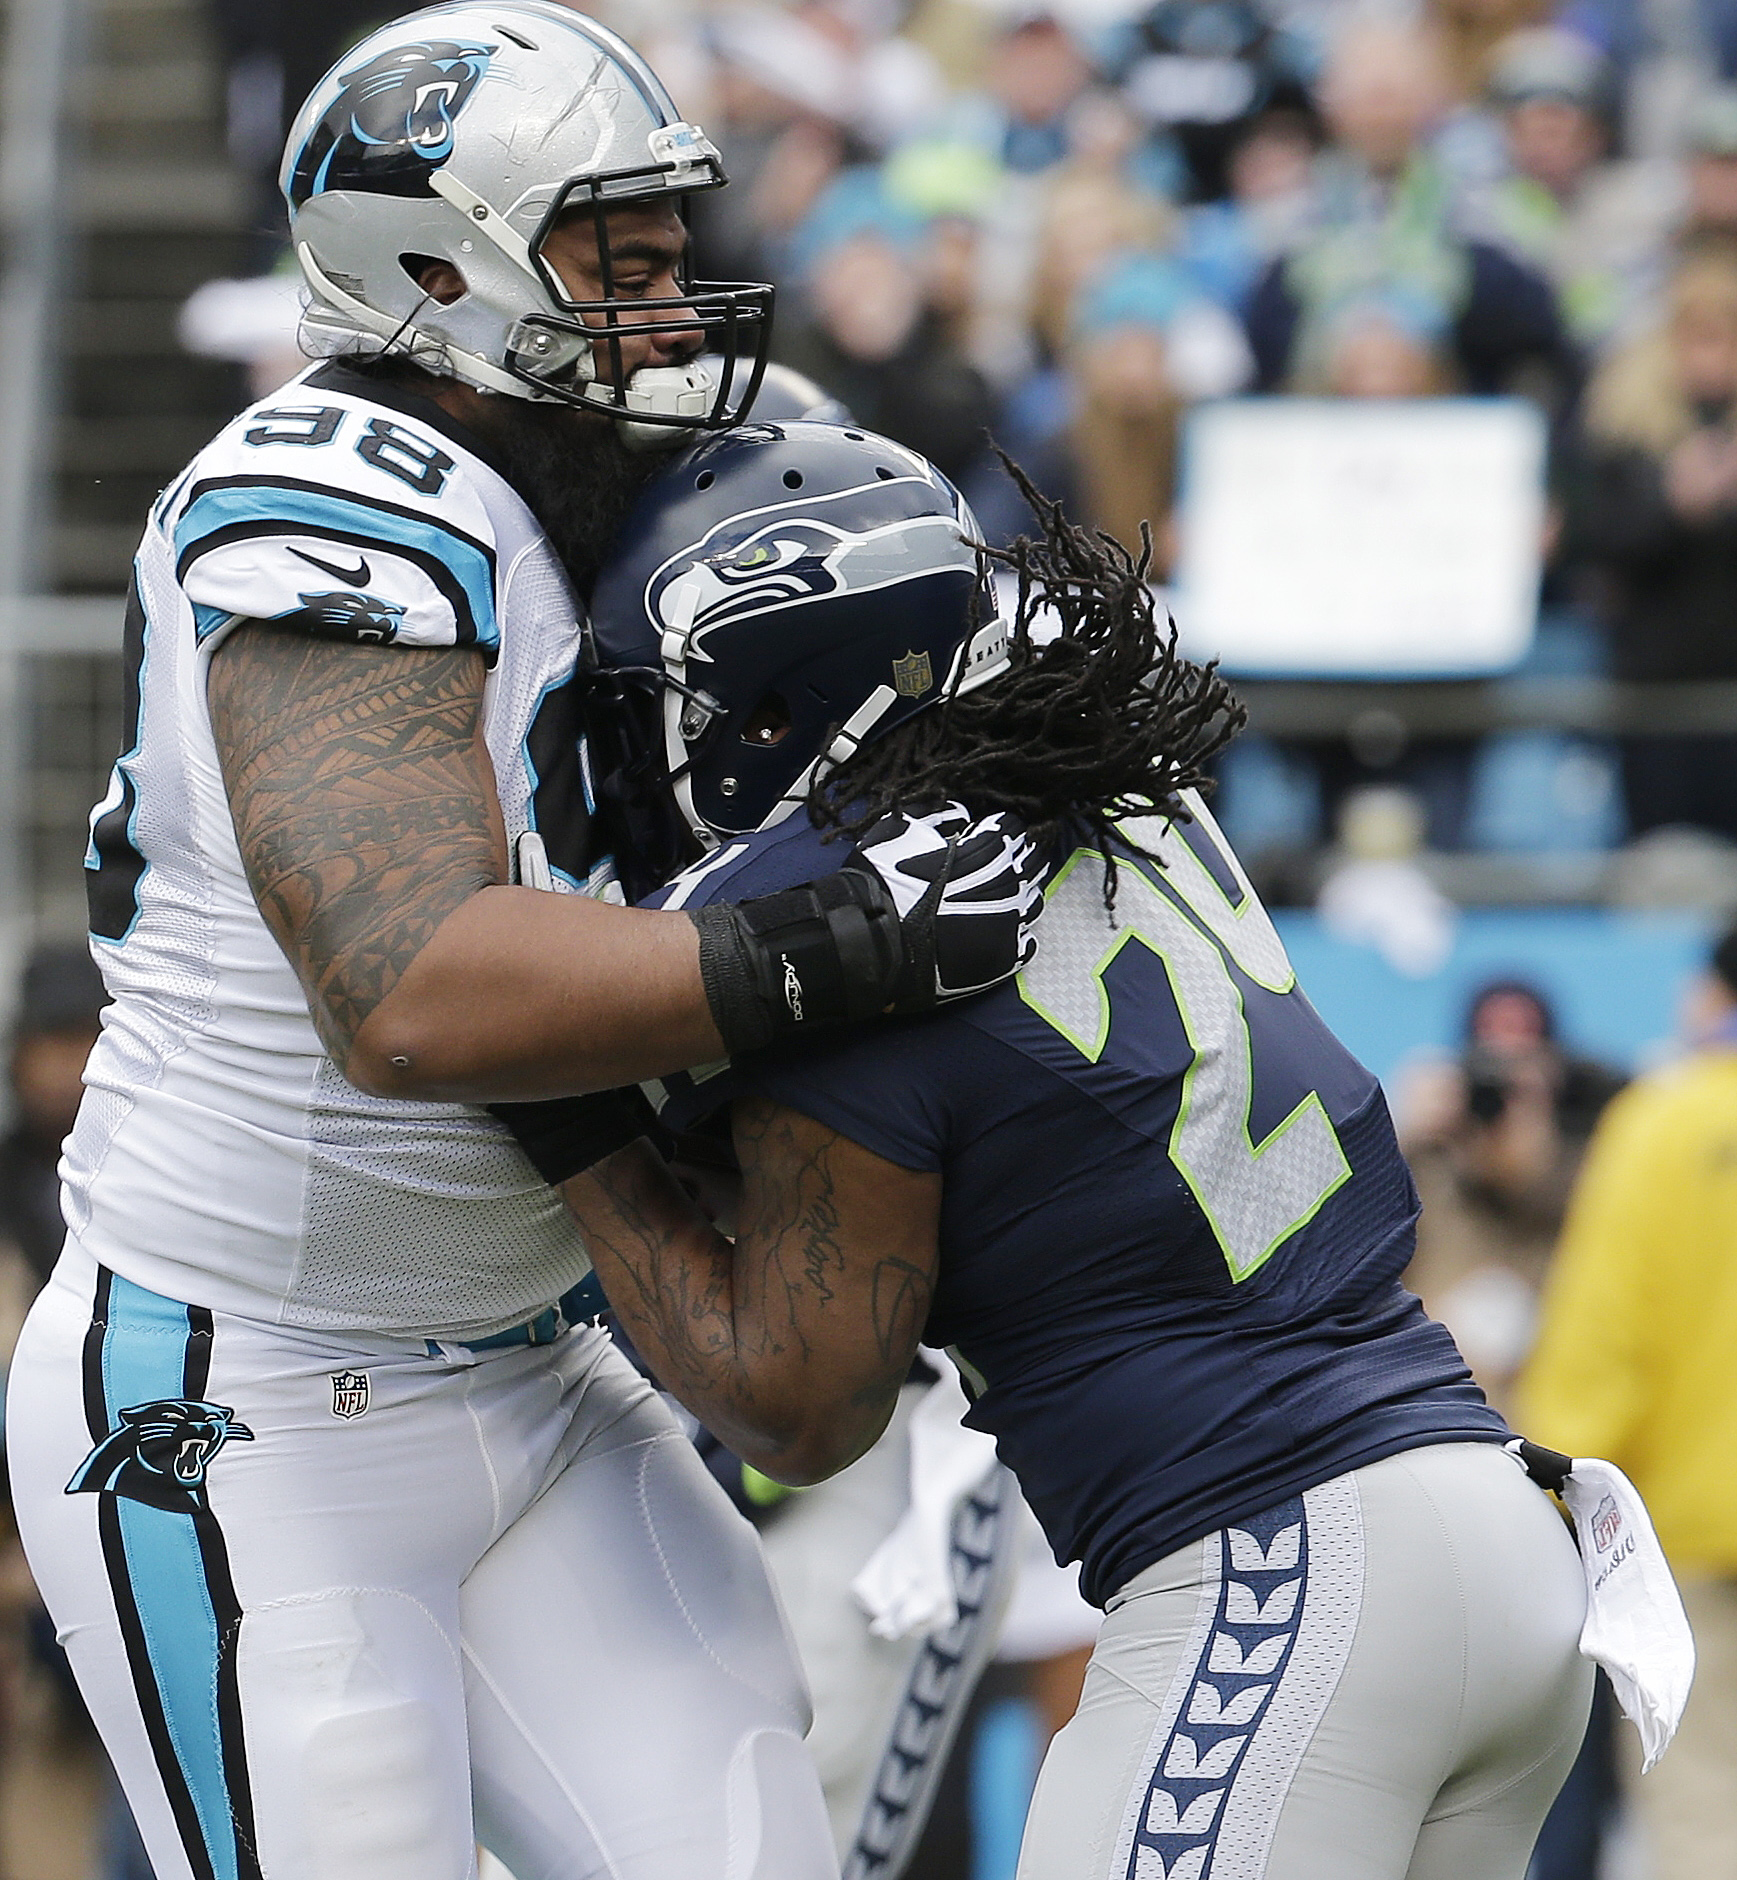 Carolina Panthers defensive tackle Star Lotulelei (98) stops Seattle Seahawks running back Marshawn Lynch (24) during the first half of an NFL divisional playoff football game, Sunday, Jan. 17, 2016, in Charlotte, N.C. (AP Photo/Chuck Burton)